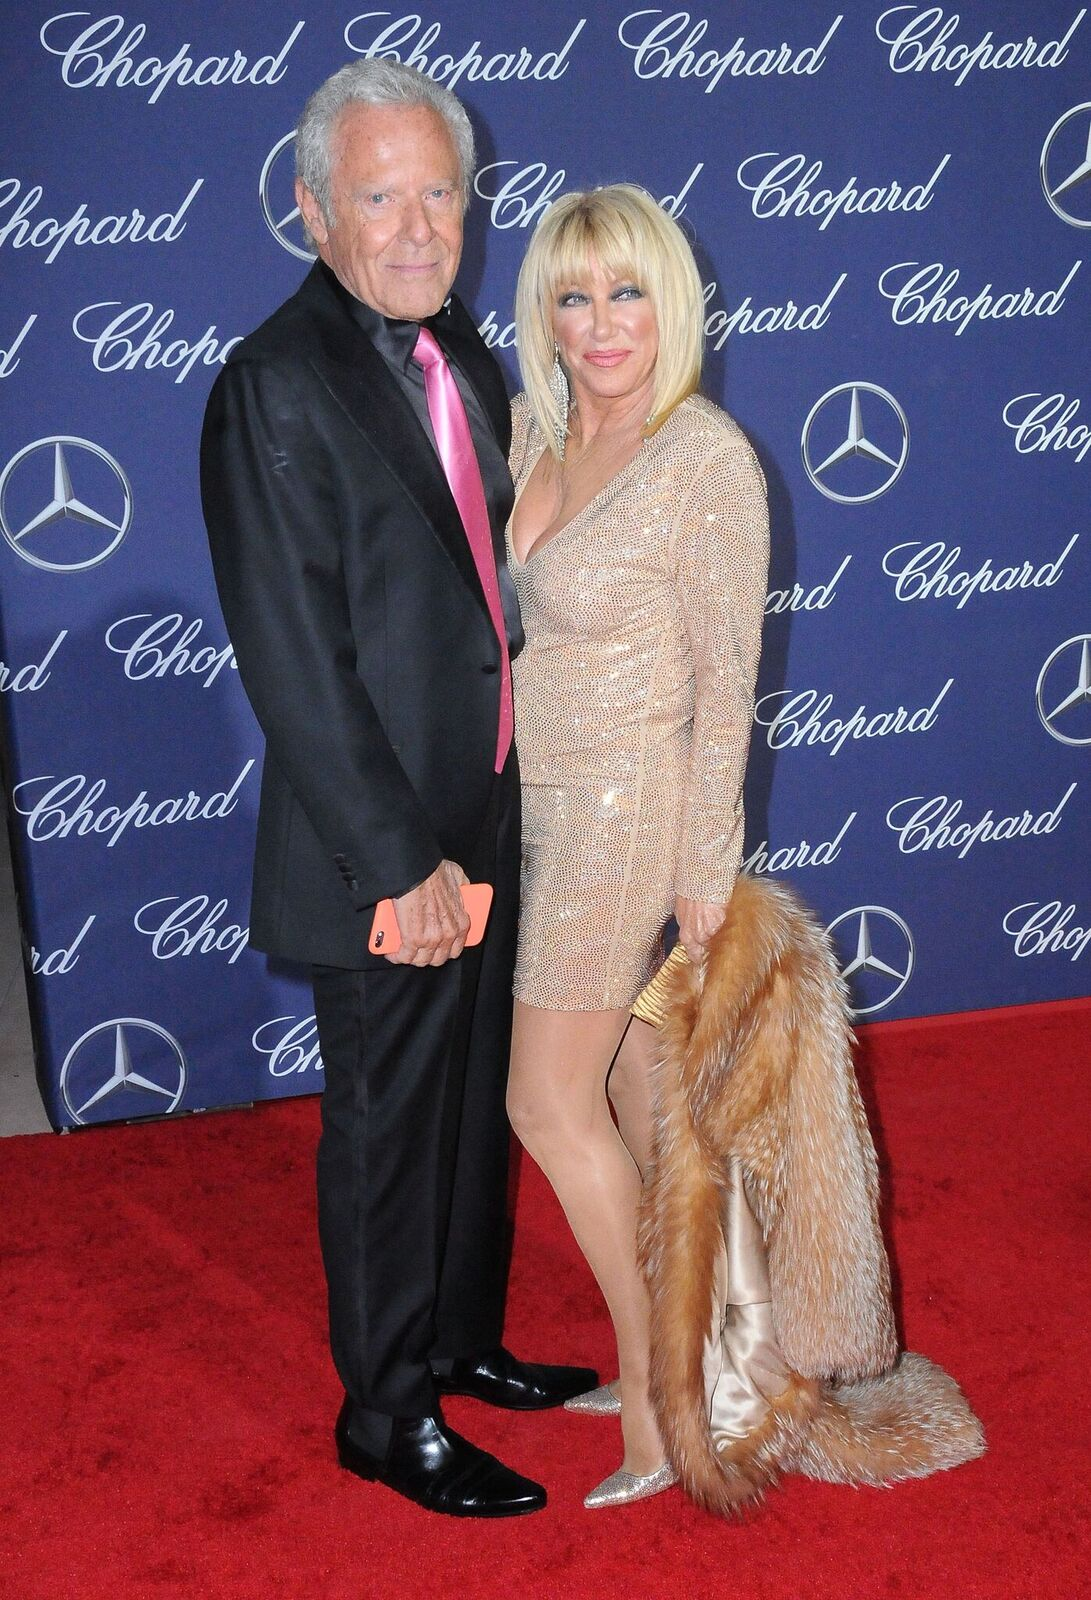 Actress Suzanne Somers (R) and husband Alan Hamel (L) attend the 28th Annual Palm Springs International Film Festival Film Awards Gala at the Palm Springs Convention Center on January 2, 2017 in Palm Springs, California | Photo: Getty Images